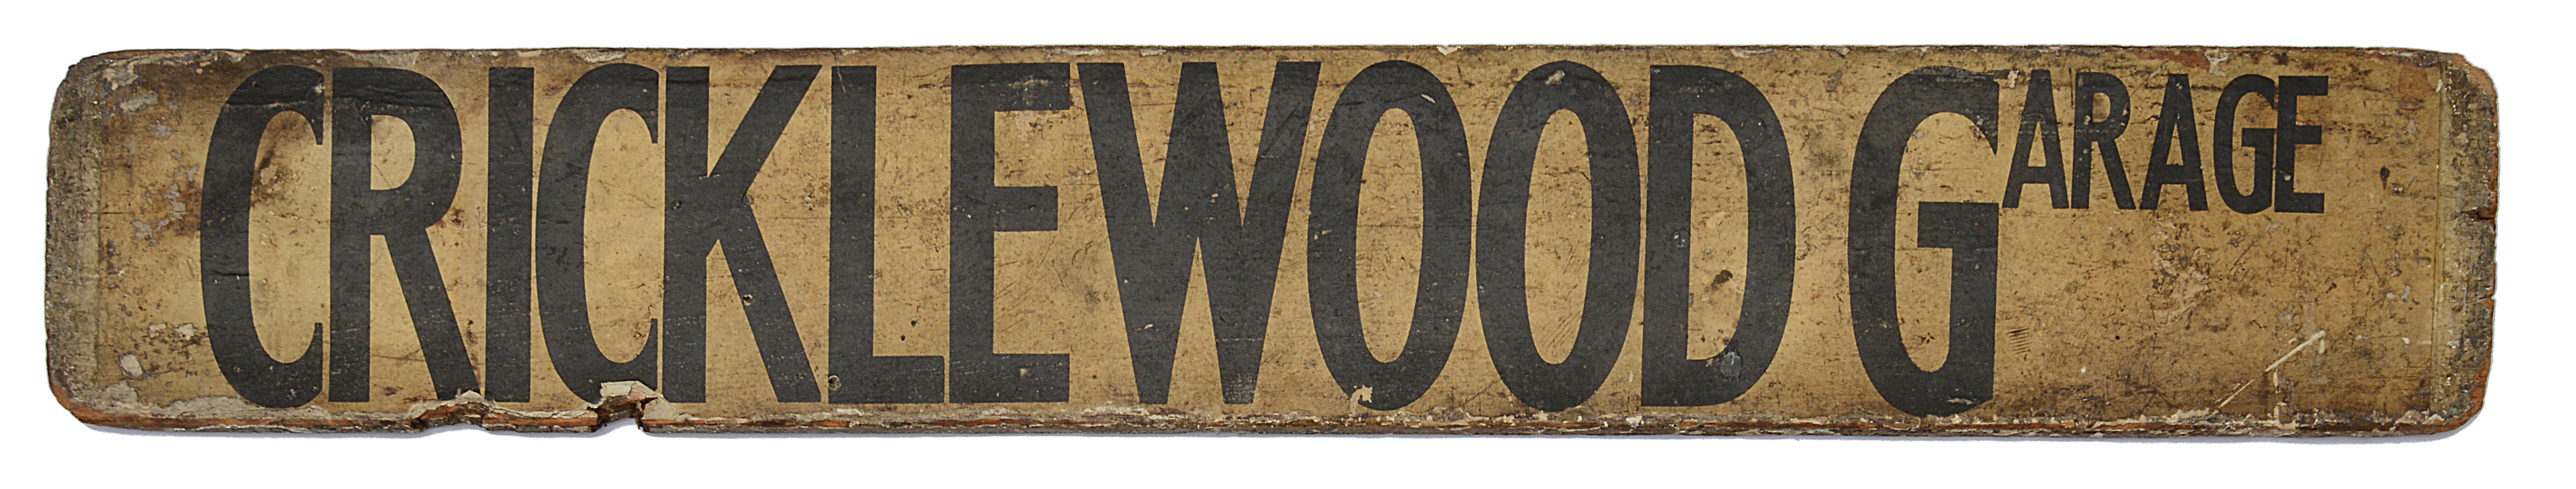 Three double sided wooden destination signs - Image 3 of 8